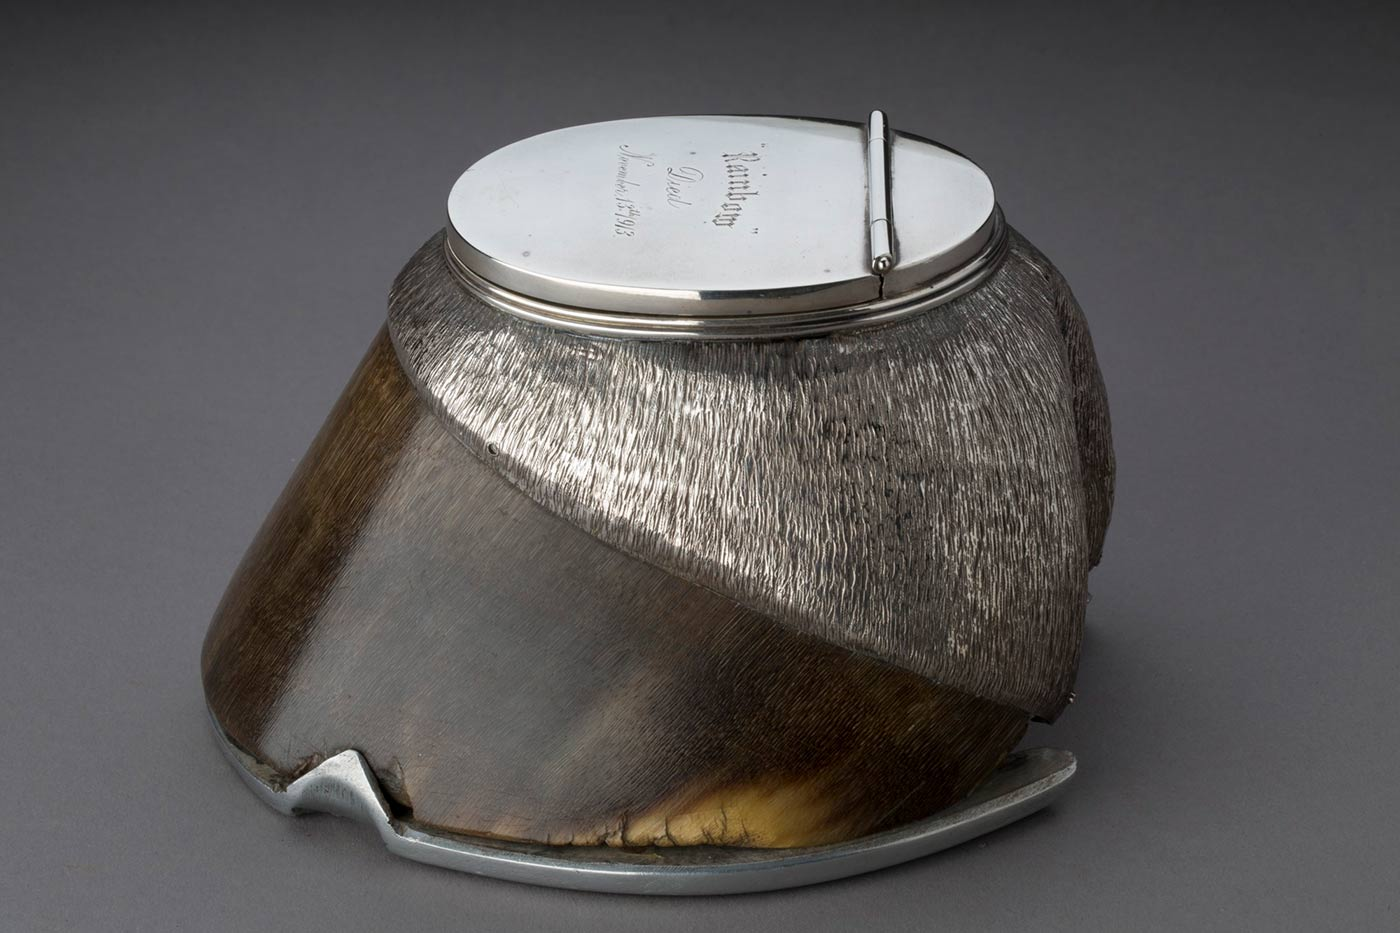 Detail of the inscription 'Rainbow died November 13th 1913' on a silver inkwell set into a horse's hoof.